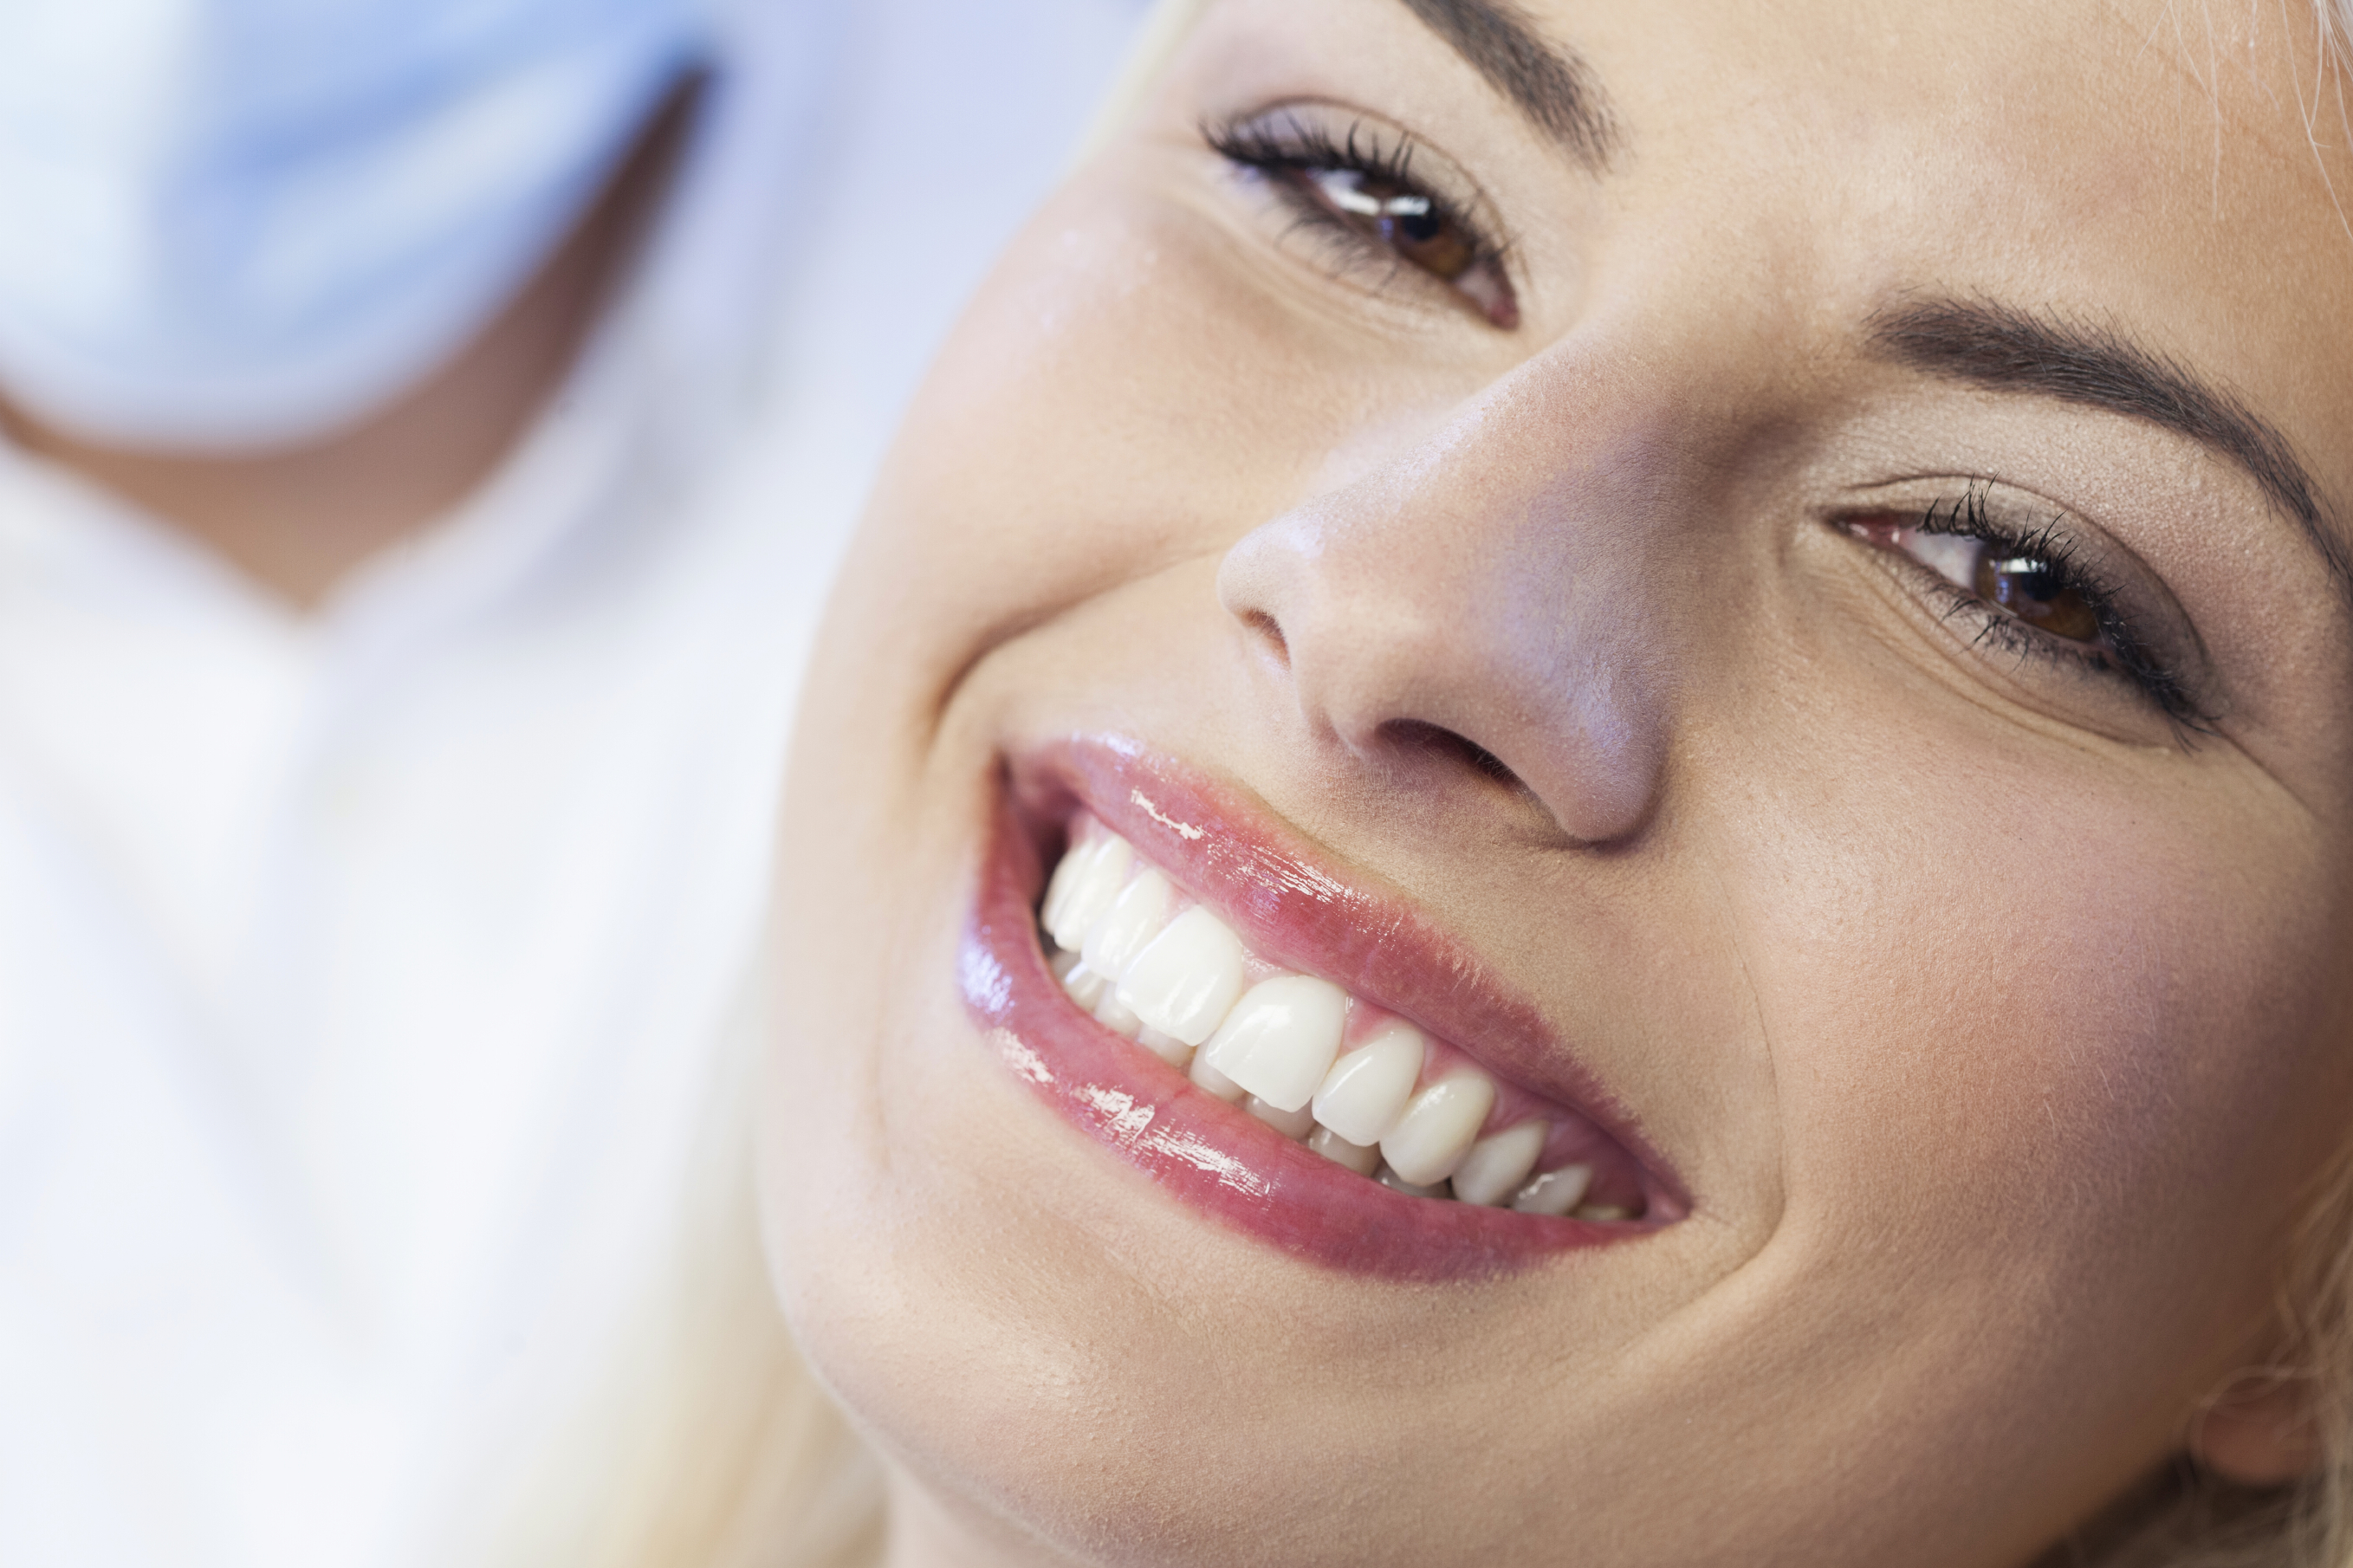 A woman without gaps between her teeth, smiling